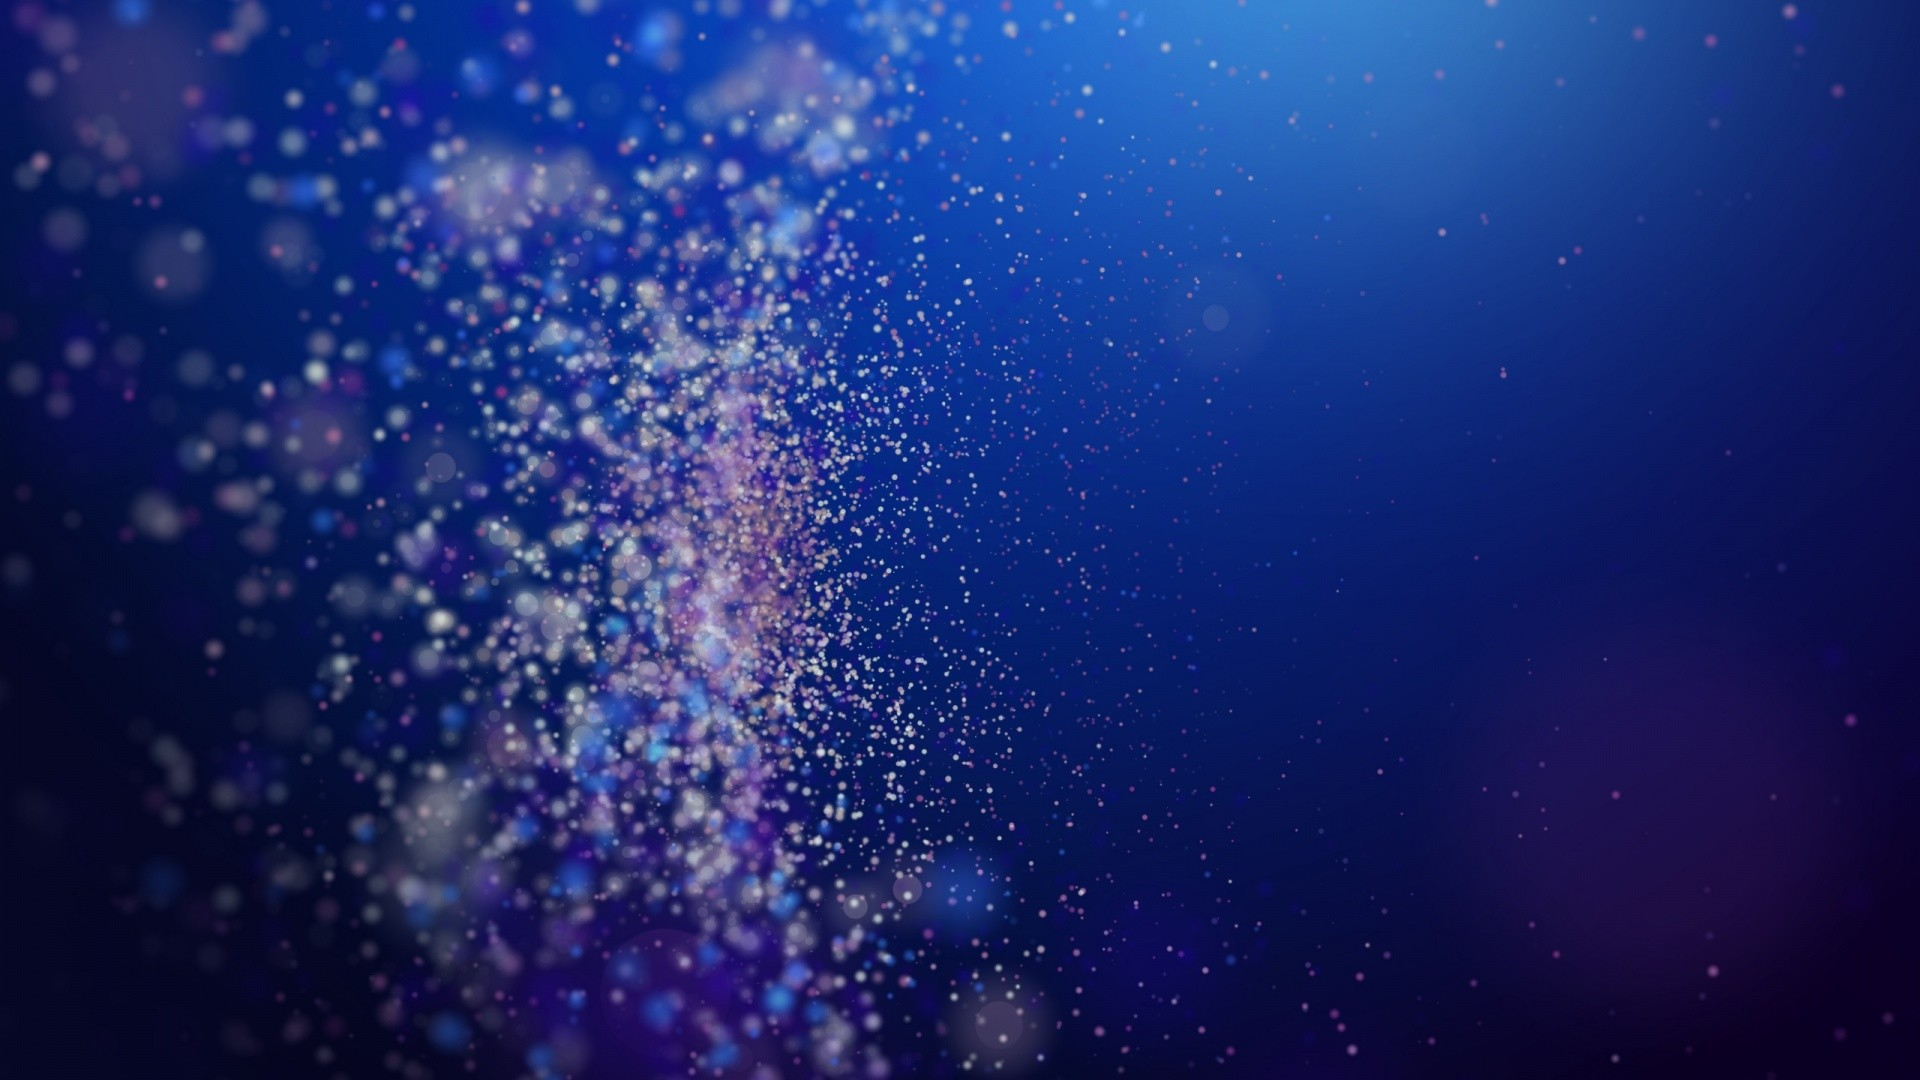 Abstract Chemistry Particles Wallpaper